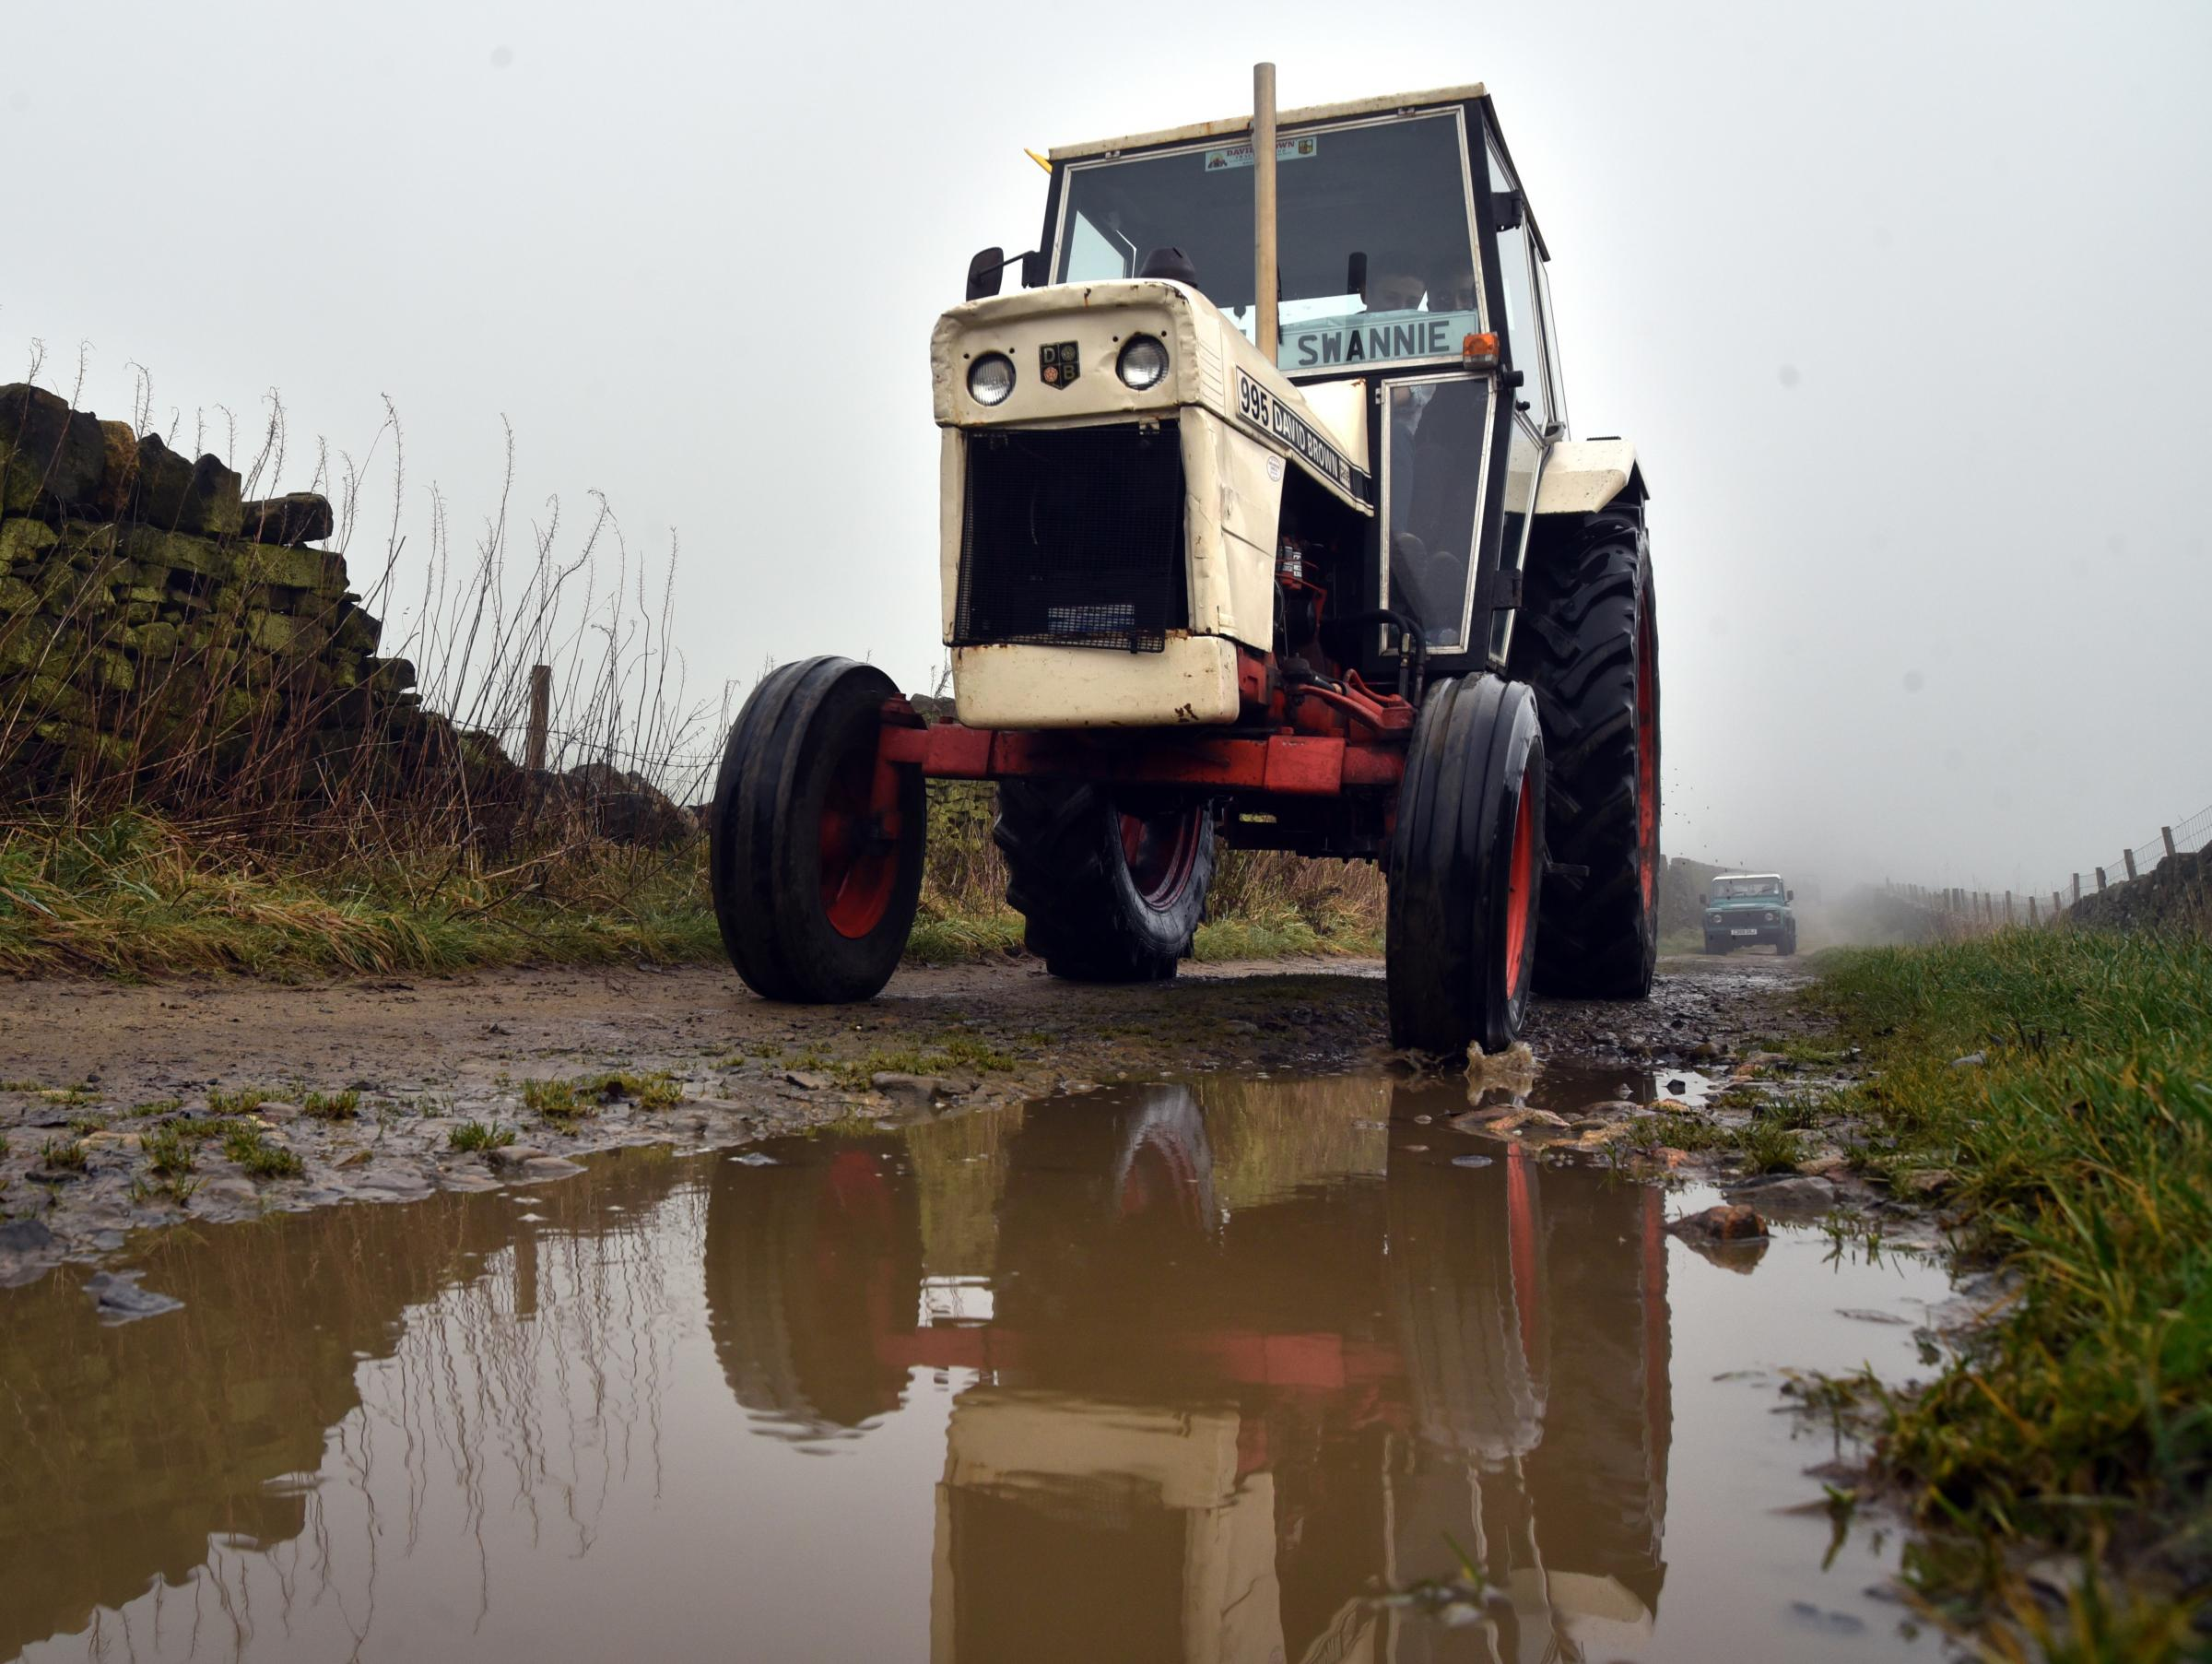 Pembrokeshire is gearing up for a major tractor run